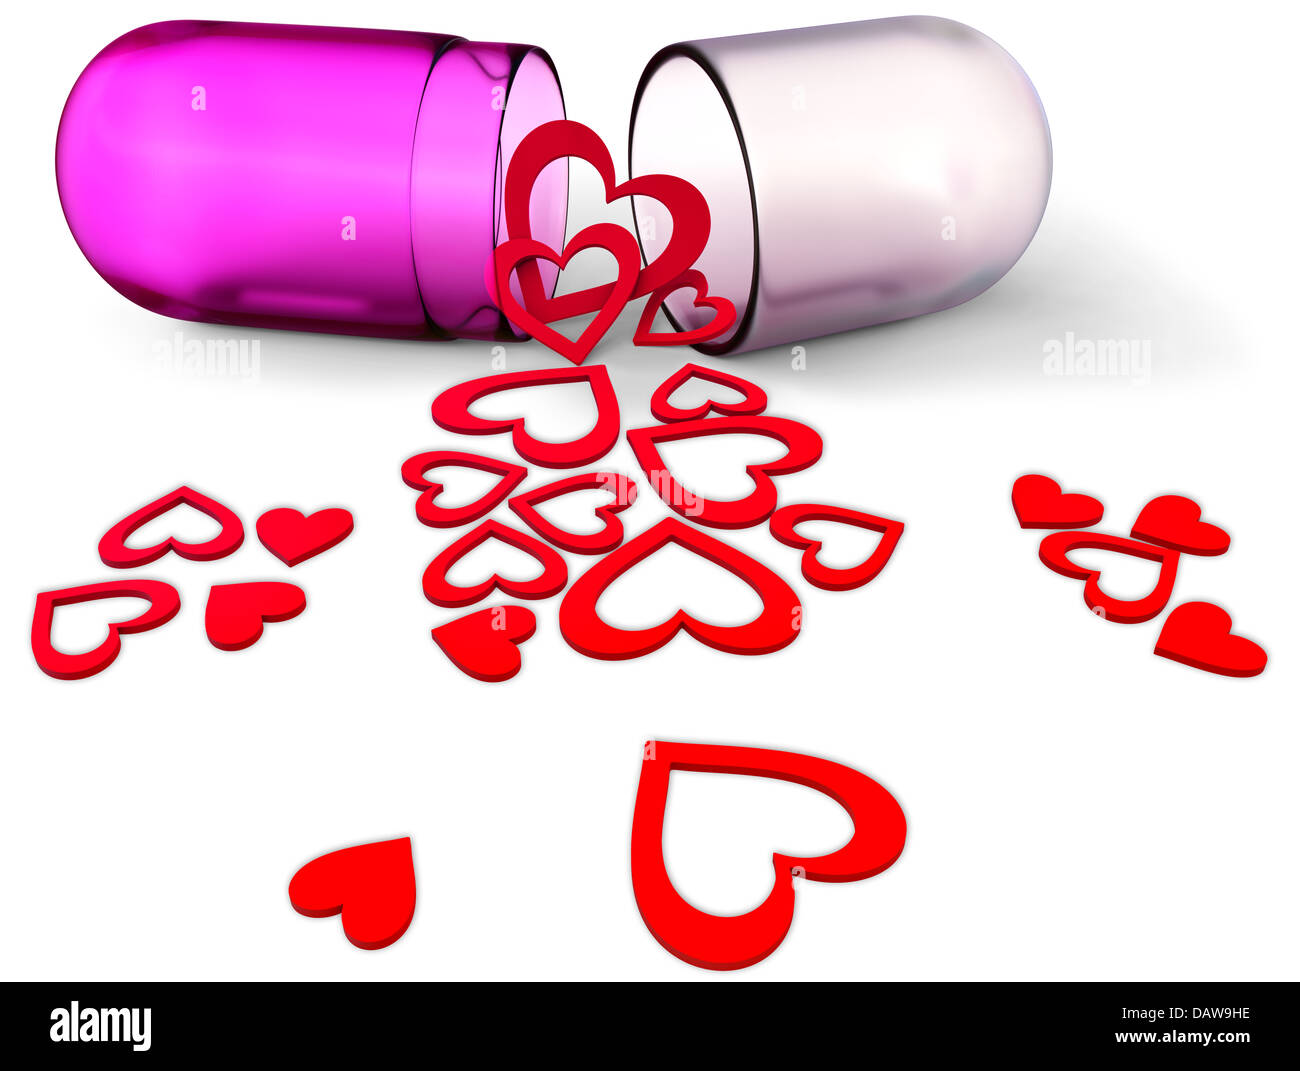 3d love pill with red hearts for Valentine's Day - Stock Image